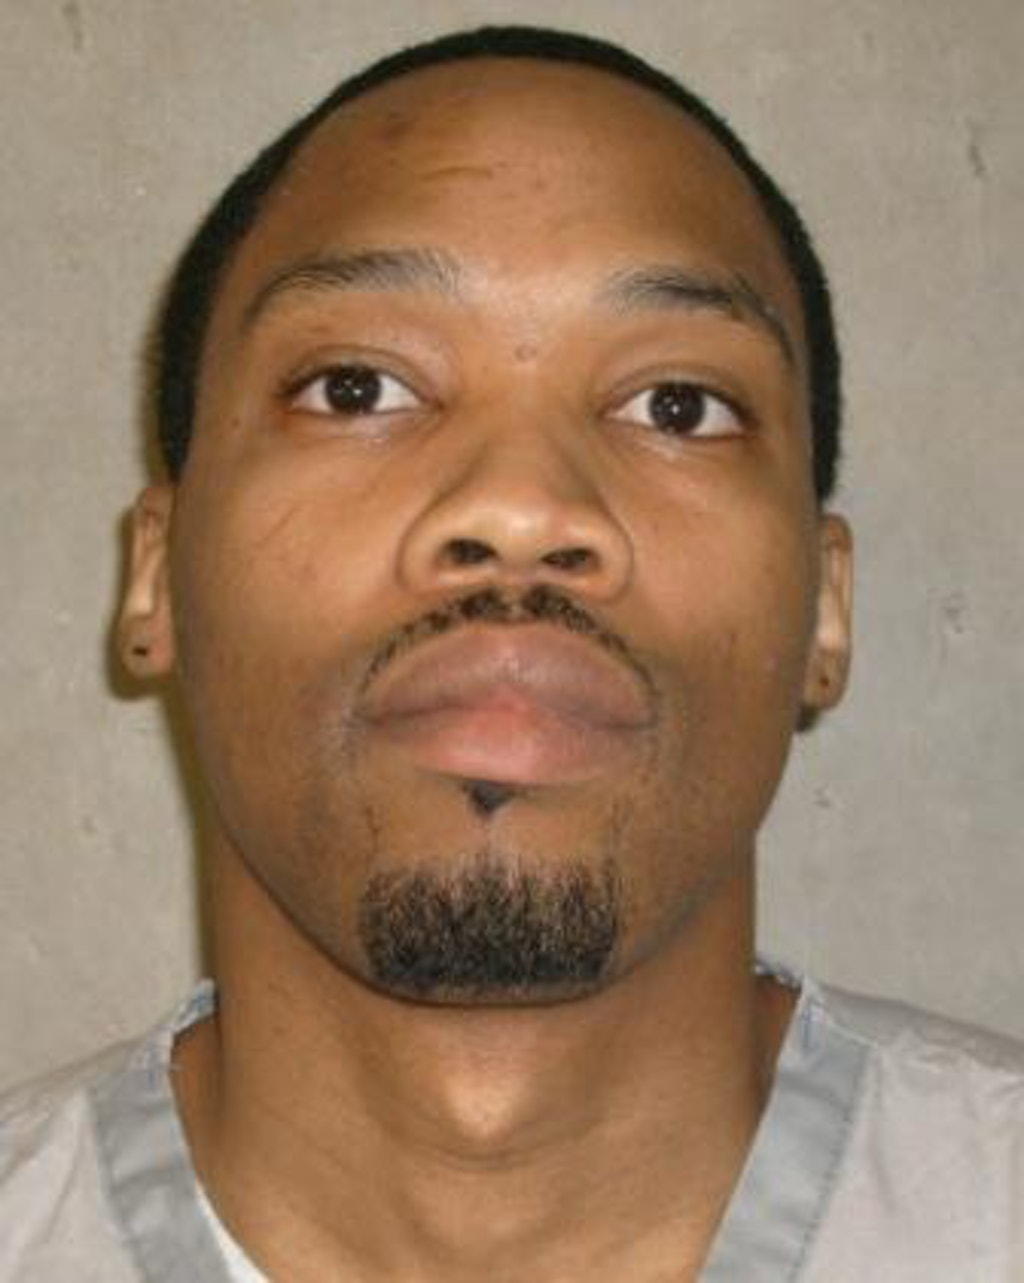 U.S. Supreme Court Declines to Review Cases Alleging Racial Bias in Oklahoma Death Penalty